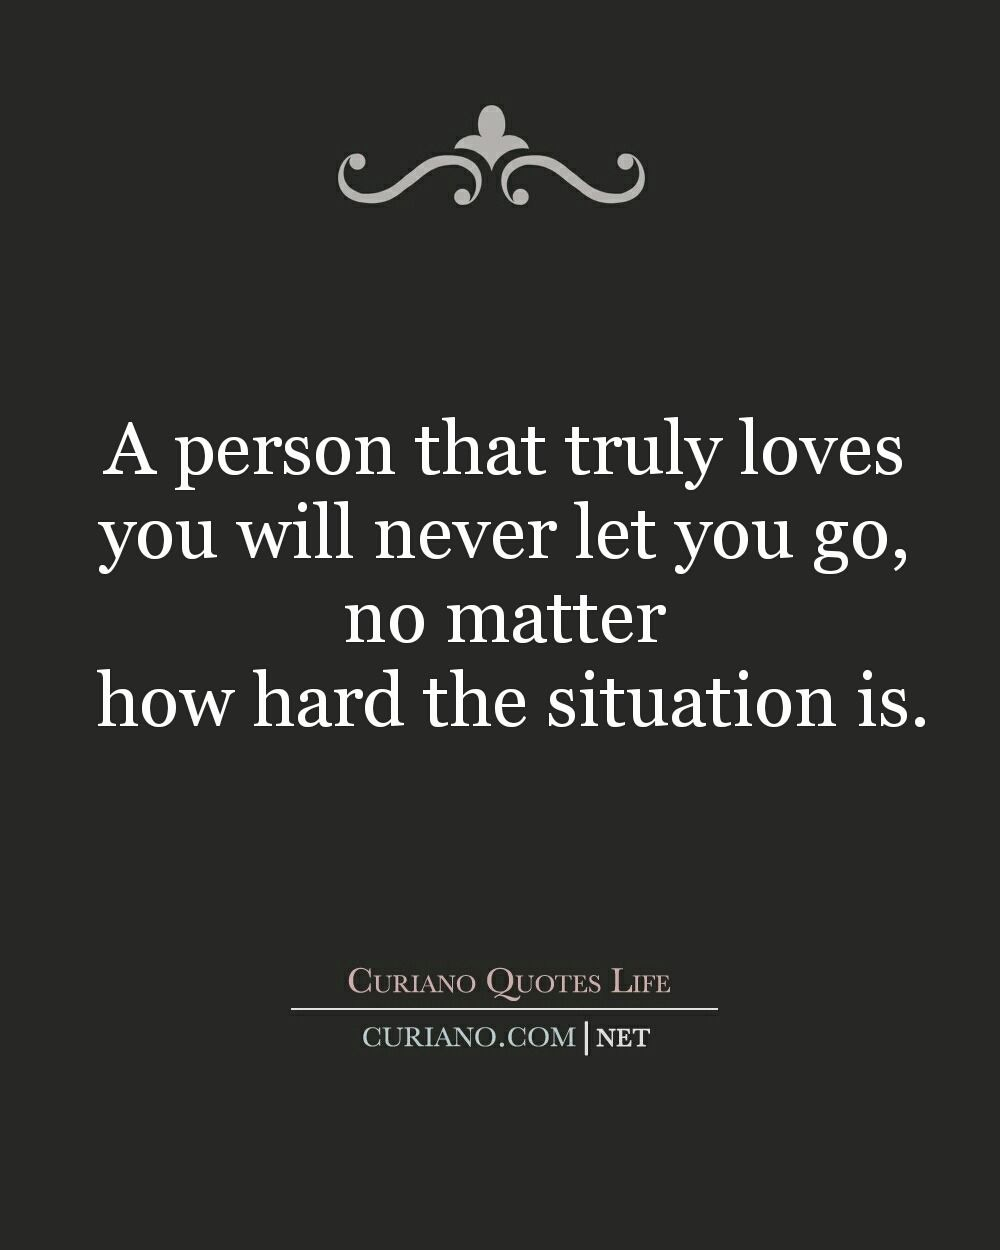 Quotes About Life Moving On This Blog Curiano Quotes Life Shows Quotes Best Life Quote